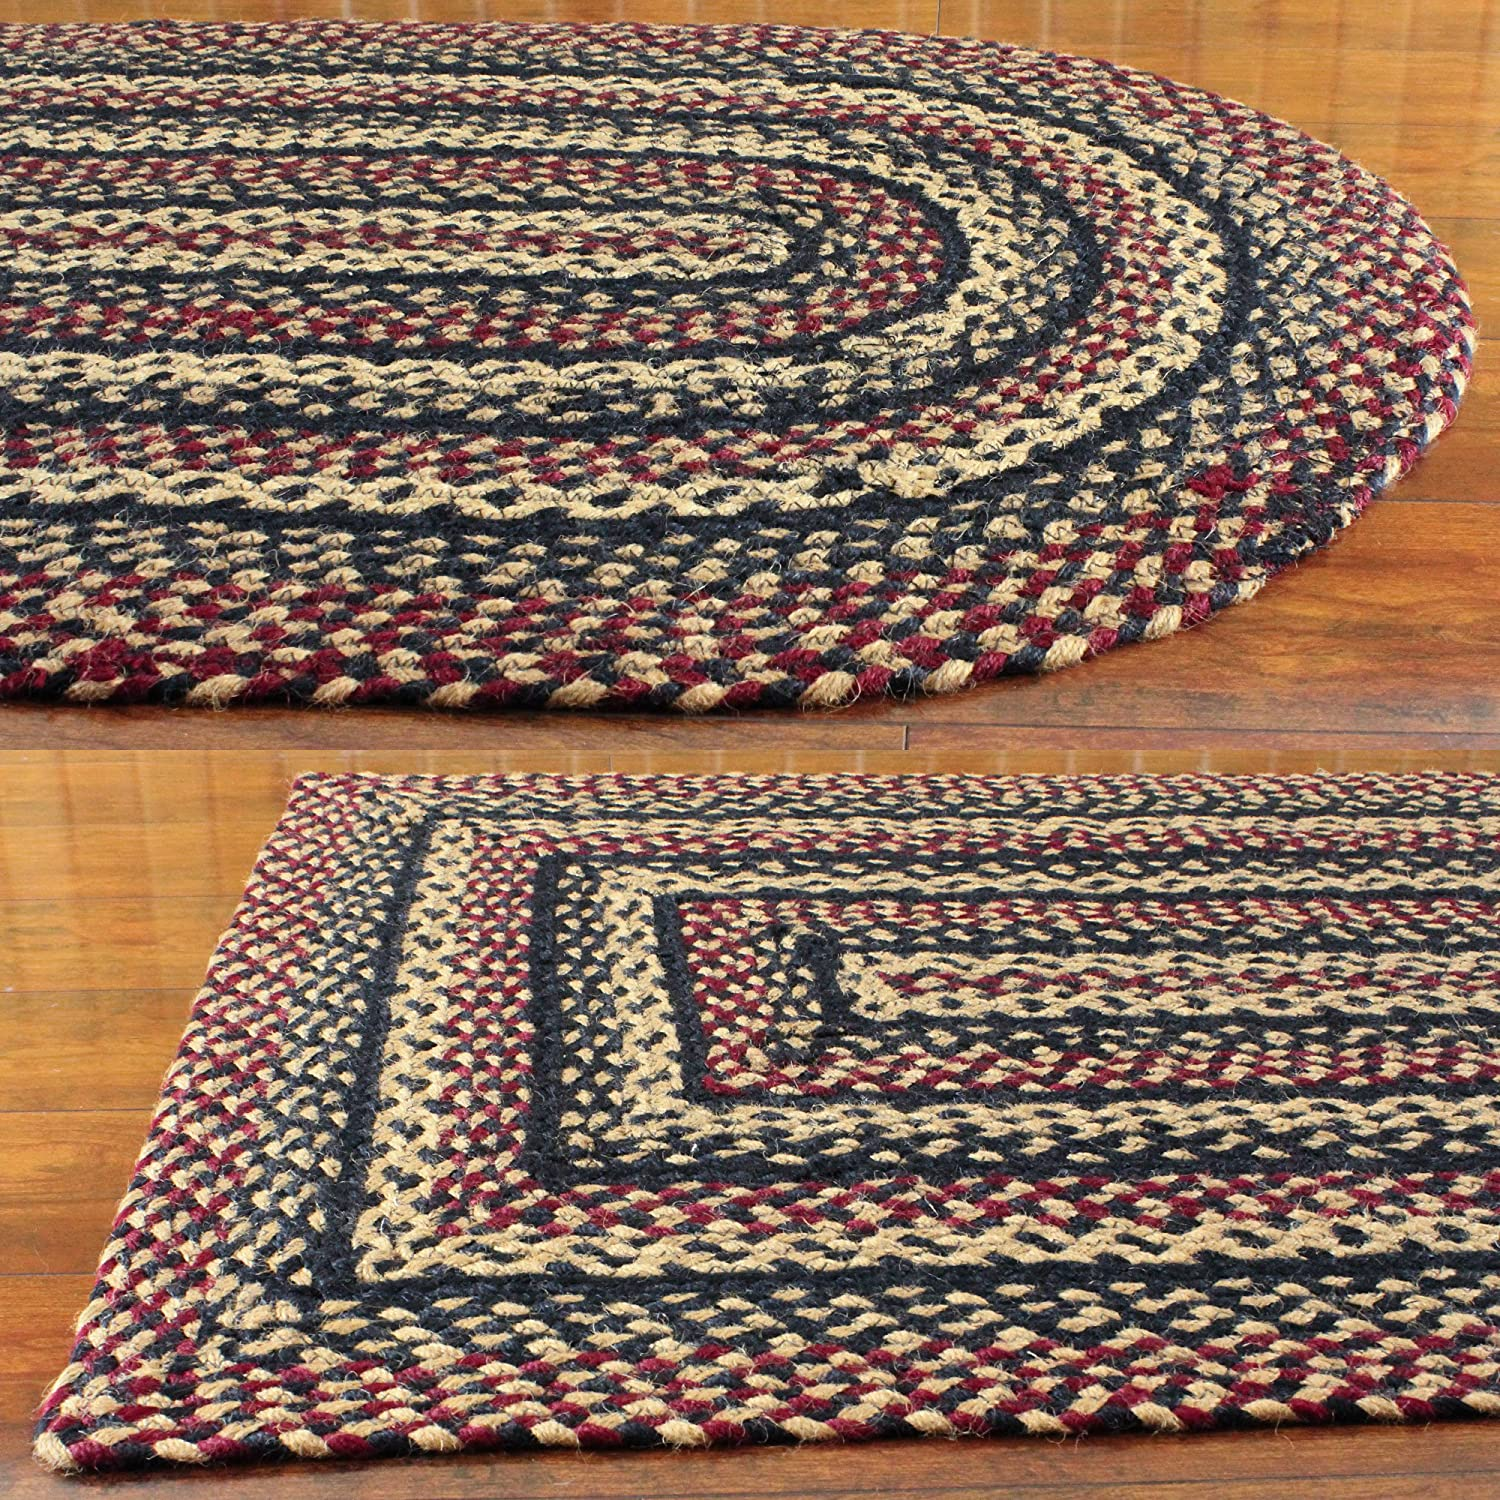 How To Braid A Rug